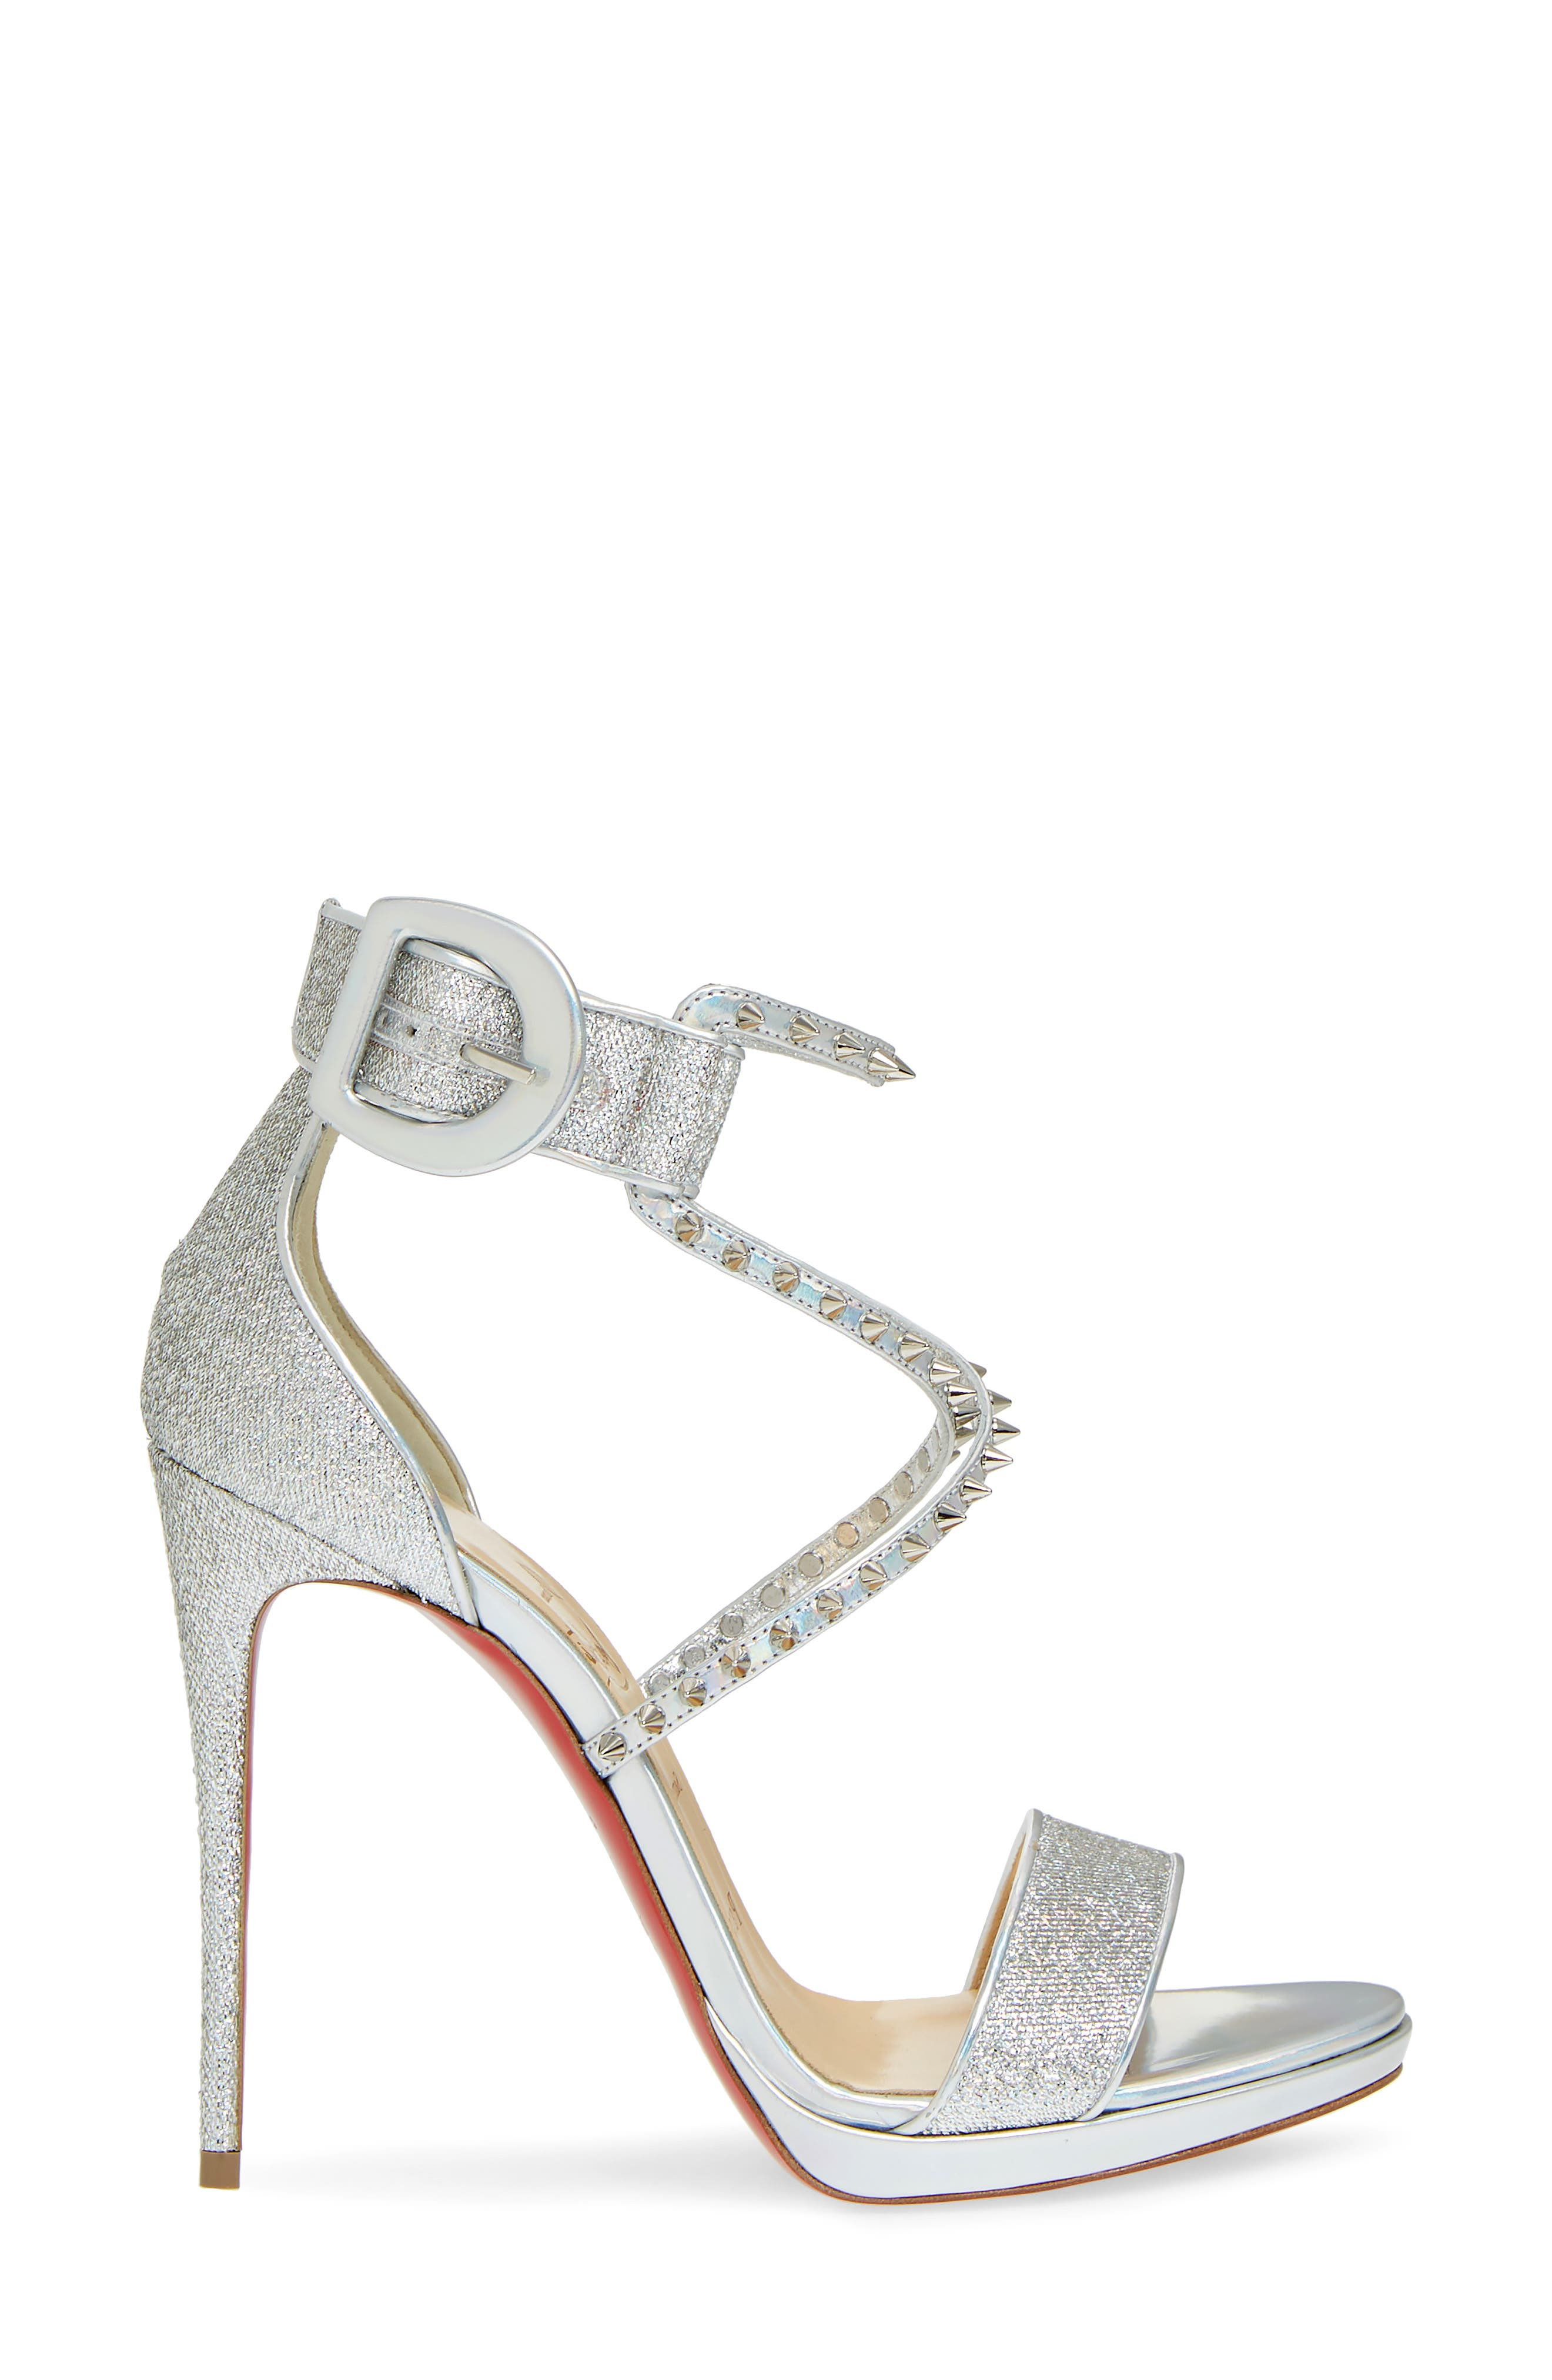 Choca Lux Spiked Sandal,                             Alternate thumbnail 3, color,                             Silver